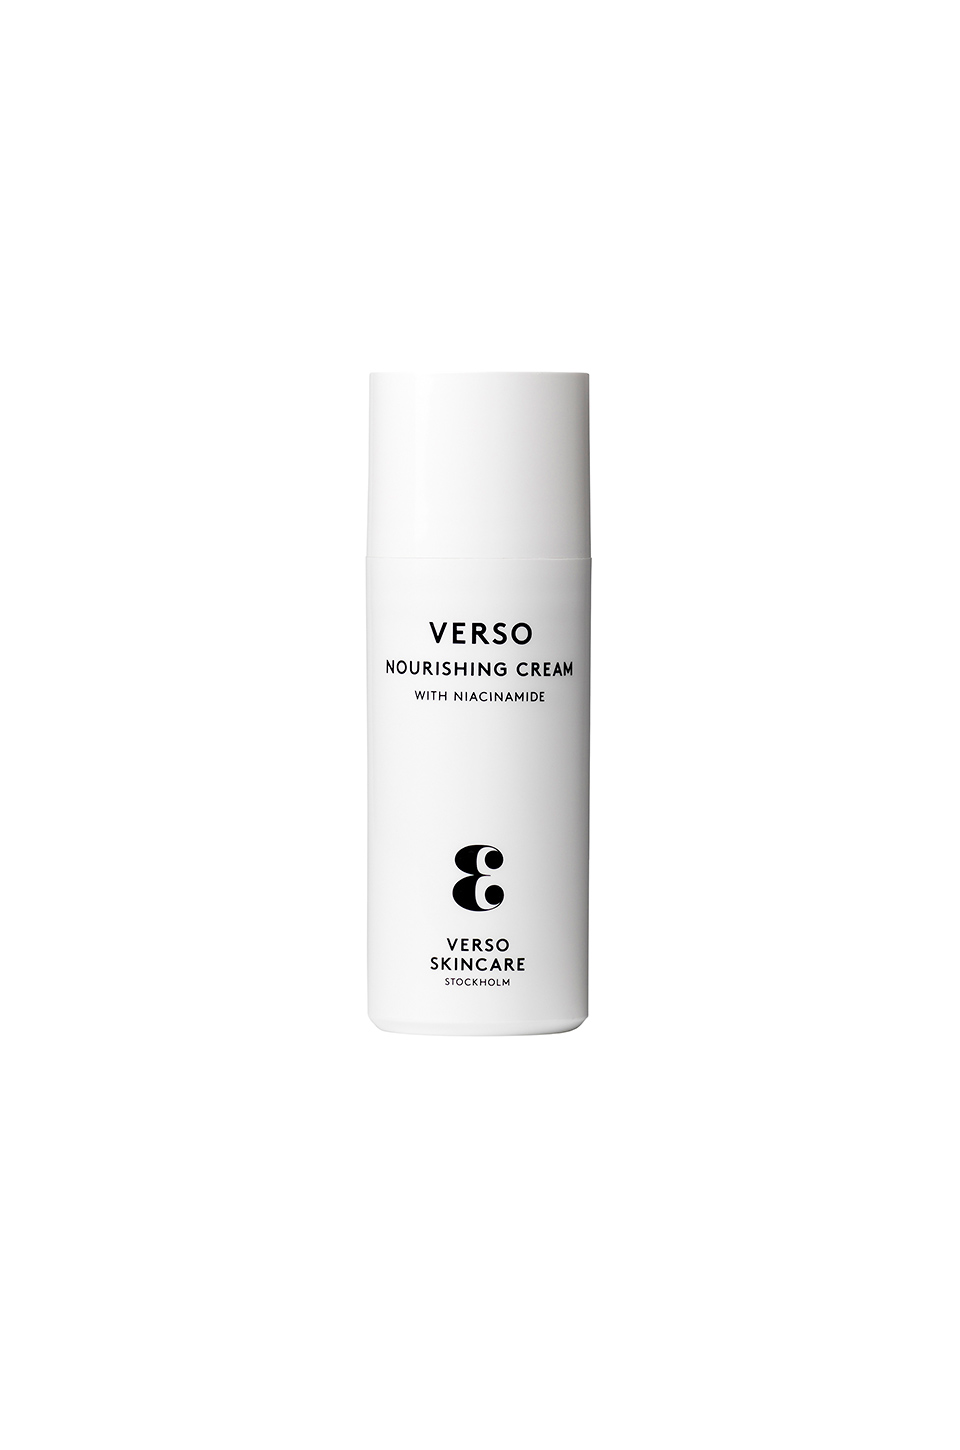 Verso Skincare Nourishing Cream In N,a